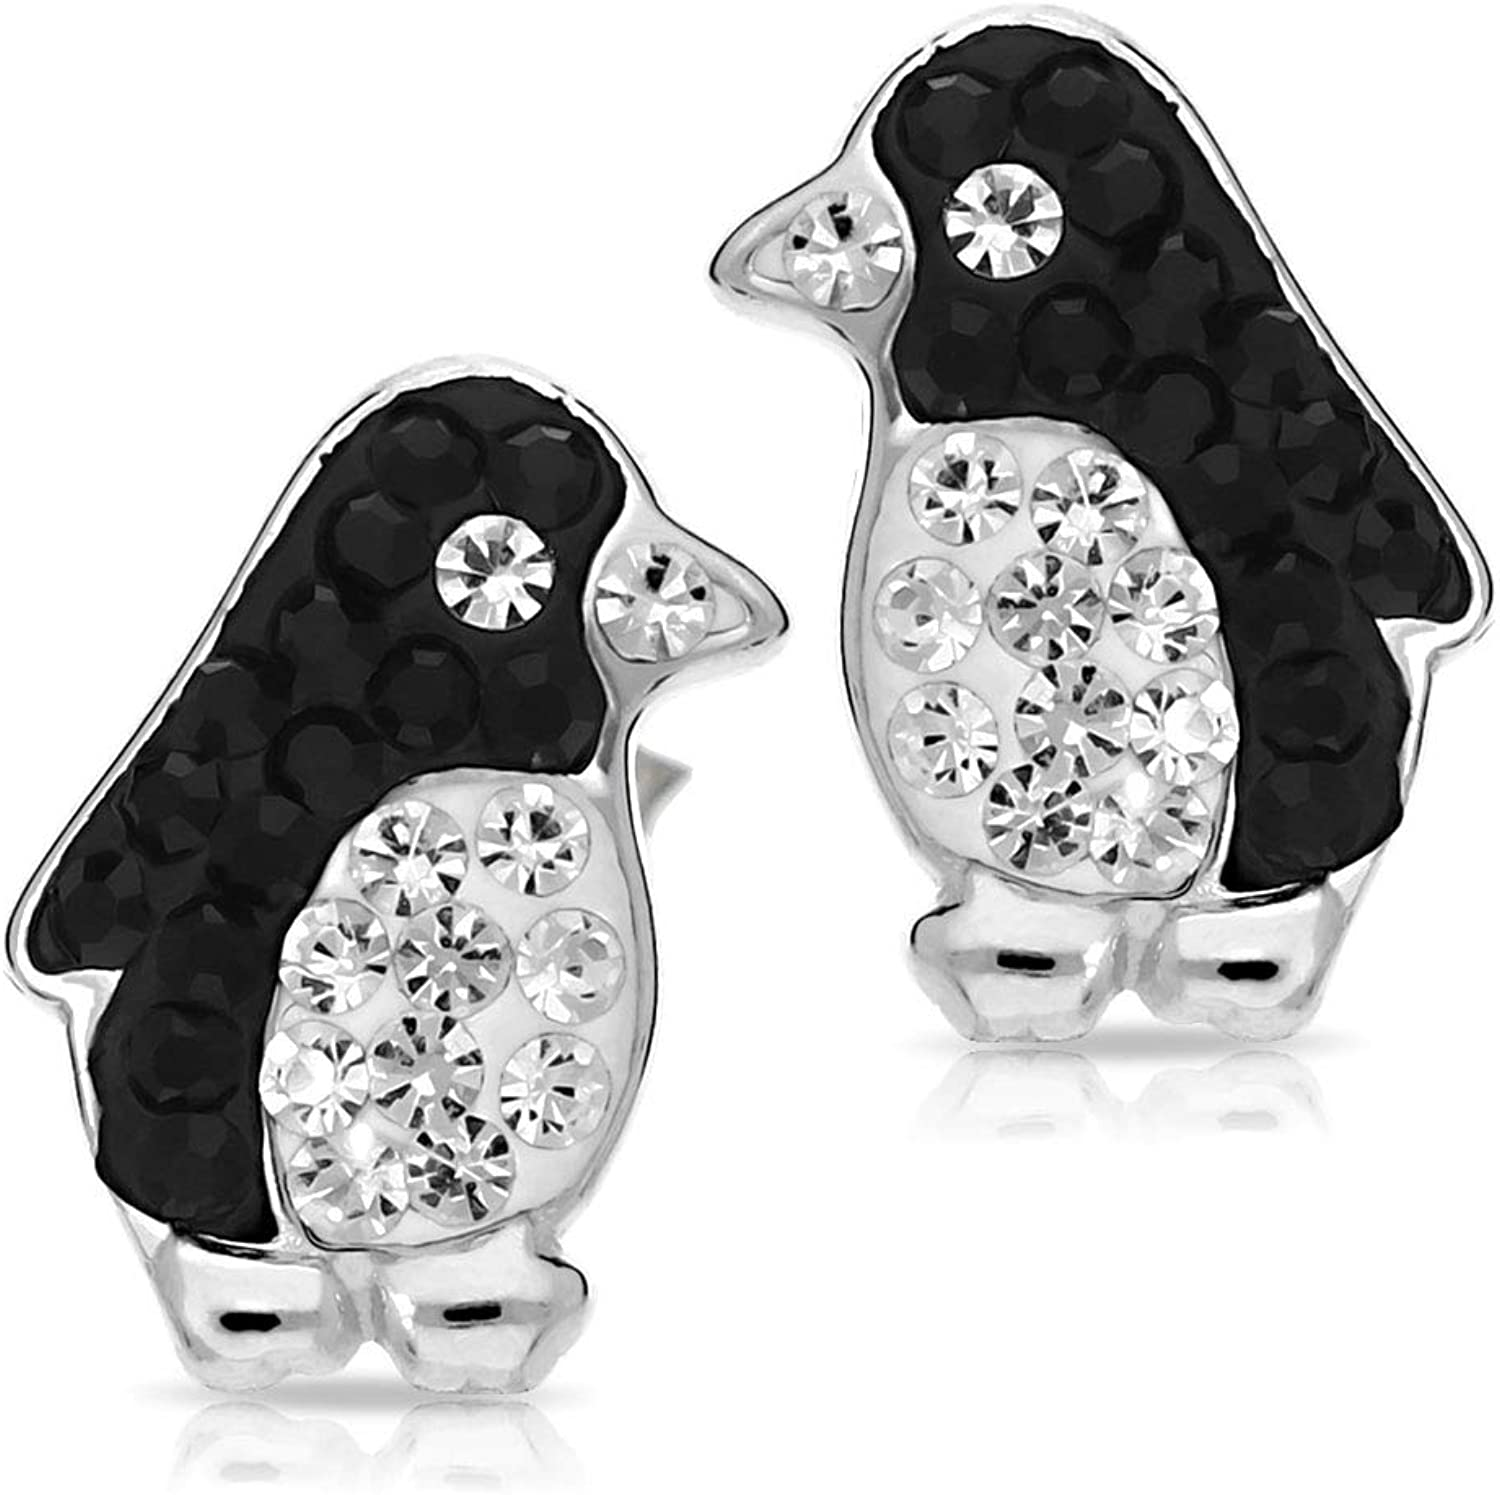 BLING BIJOUX Cute Crystal Penguin Earrings Never Rust 925 Sterling Silver Natural and Hypoallergenic Studs For Women and Girls with Free Breathtaking Gift Box for Special Moments of Love